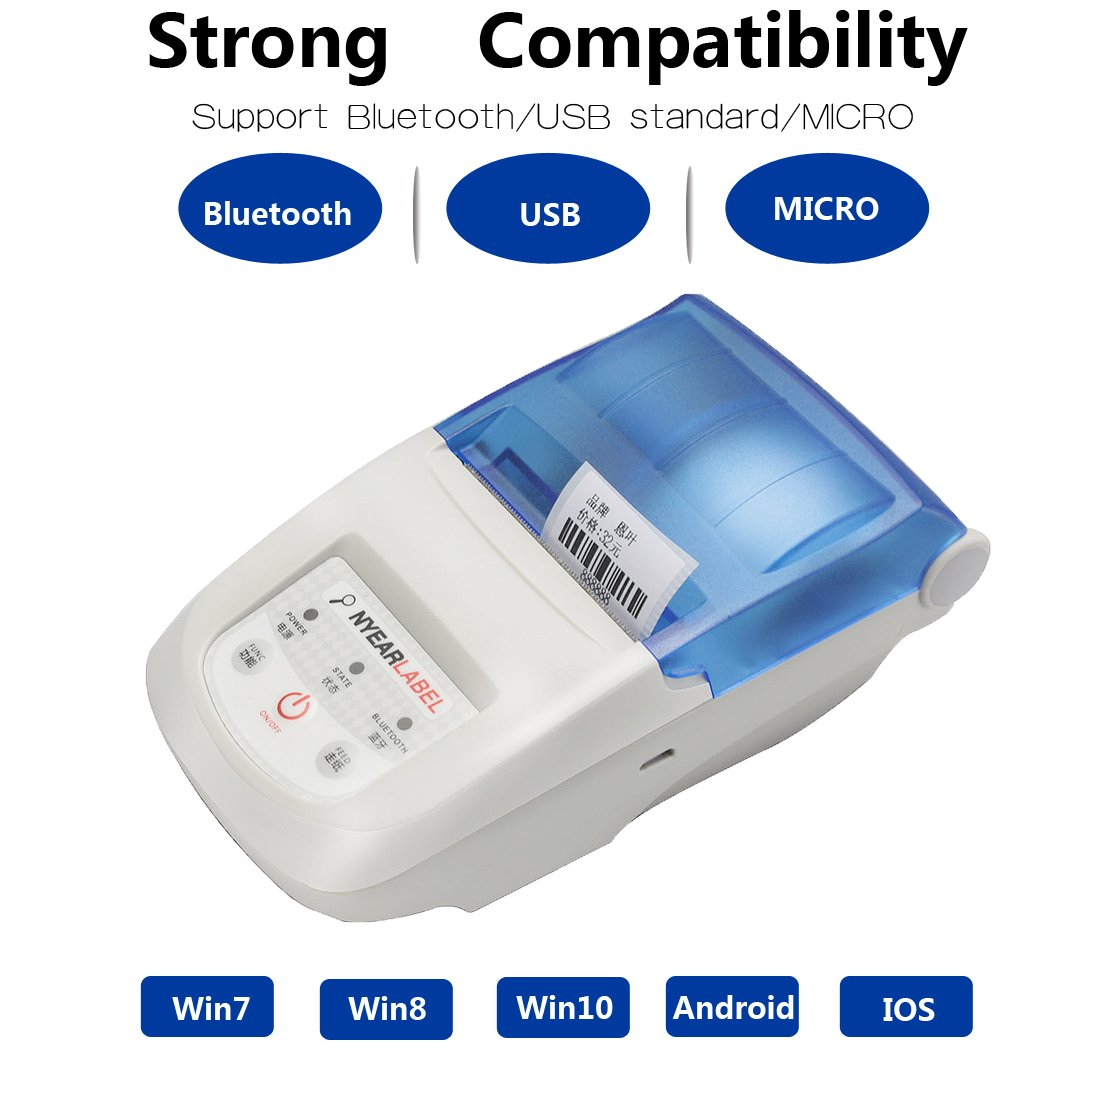 NYEAR58-10mm (Adjust) Receipt Printer,Portable Personal Mini Wireless Bluetooth Printer iOS Android Systems, USB Thermal Printer Compatible ESC/POS Print Commands Set (Bluetooth+USB)